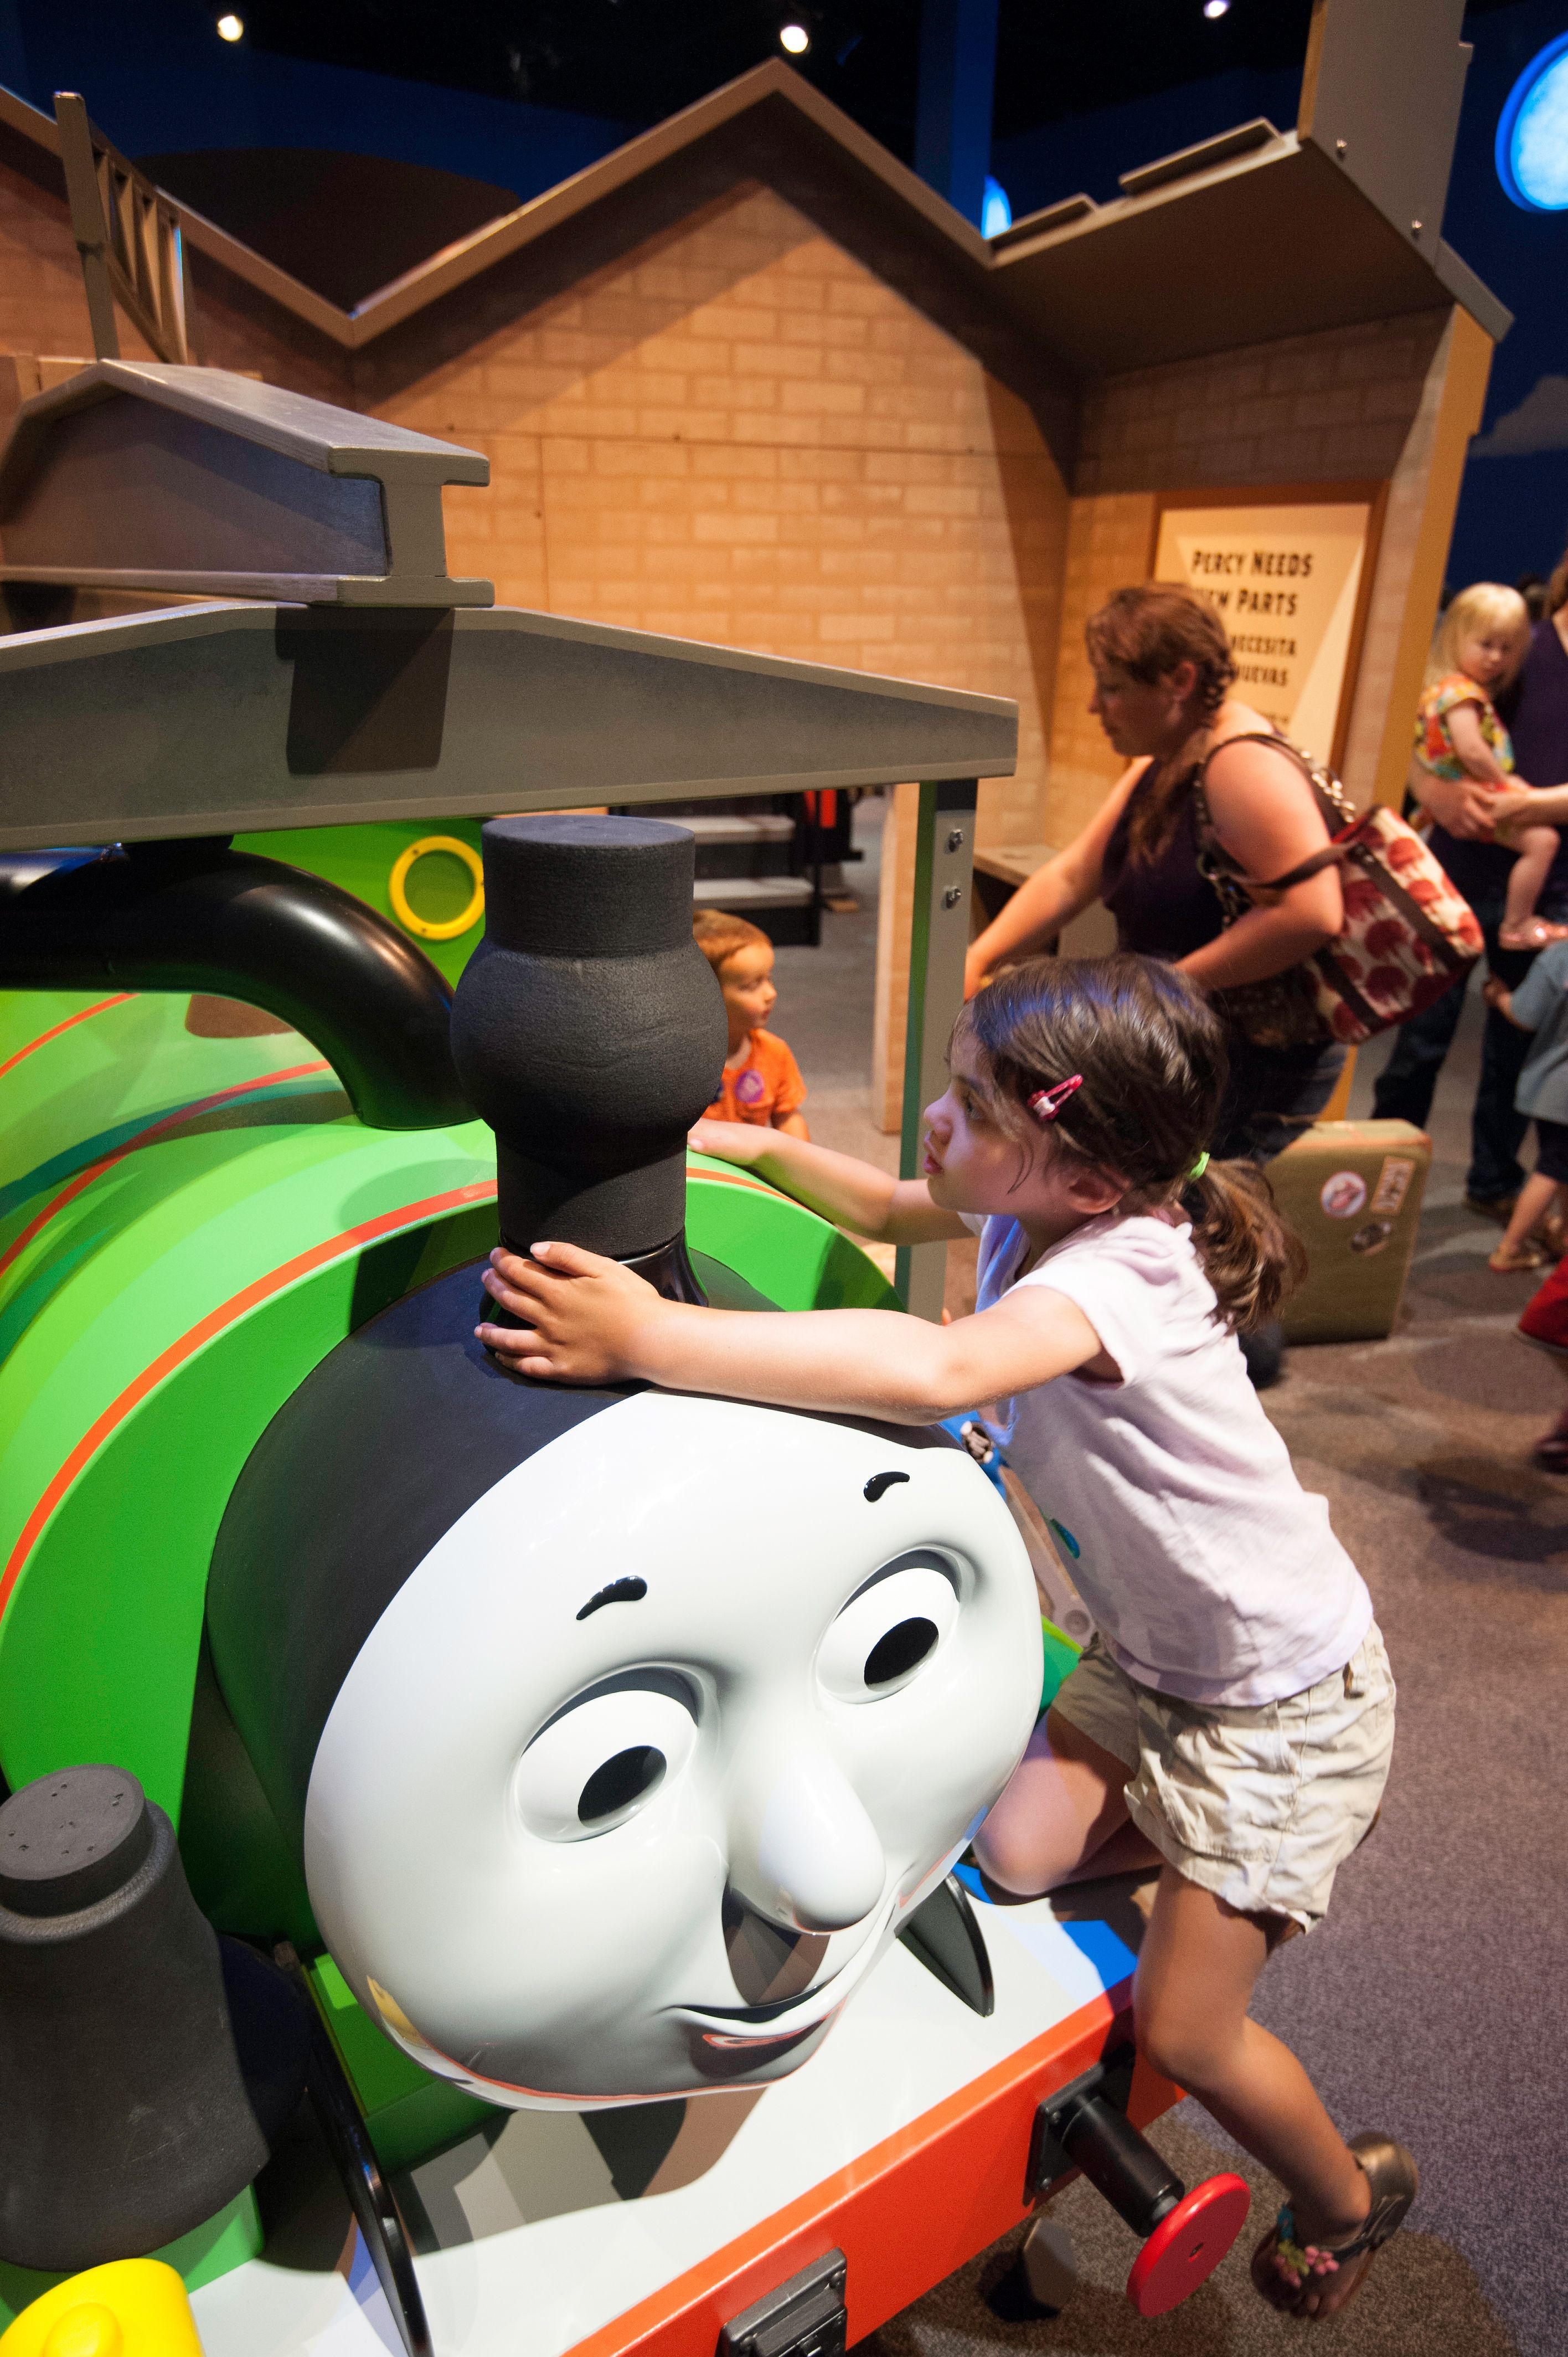 One part of Thomas & Friends: Explore the Rails is getting Percy ready to go on an adventure. Children will be able to attach lights,wheels and other items to Percy as he prepares for departure.